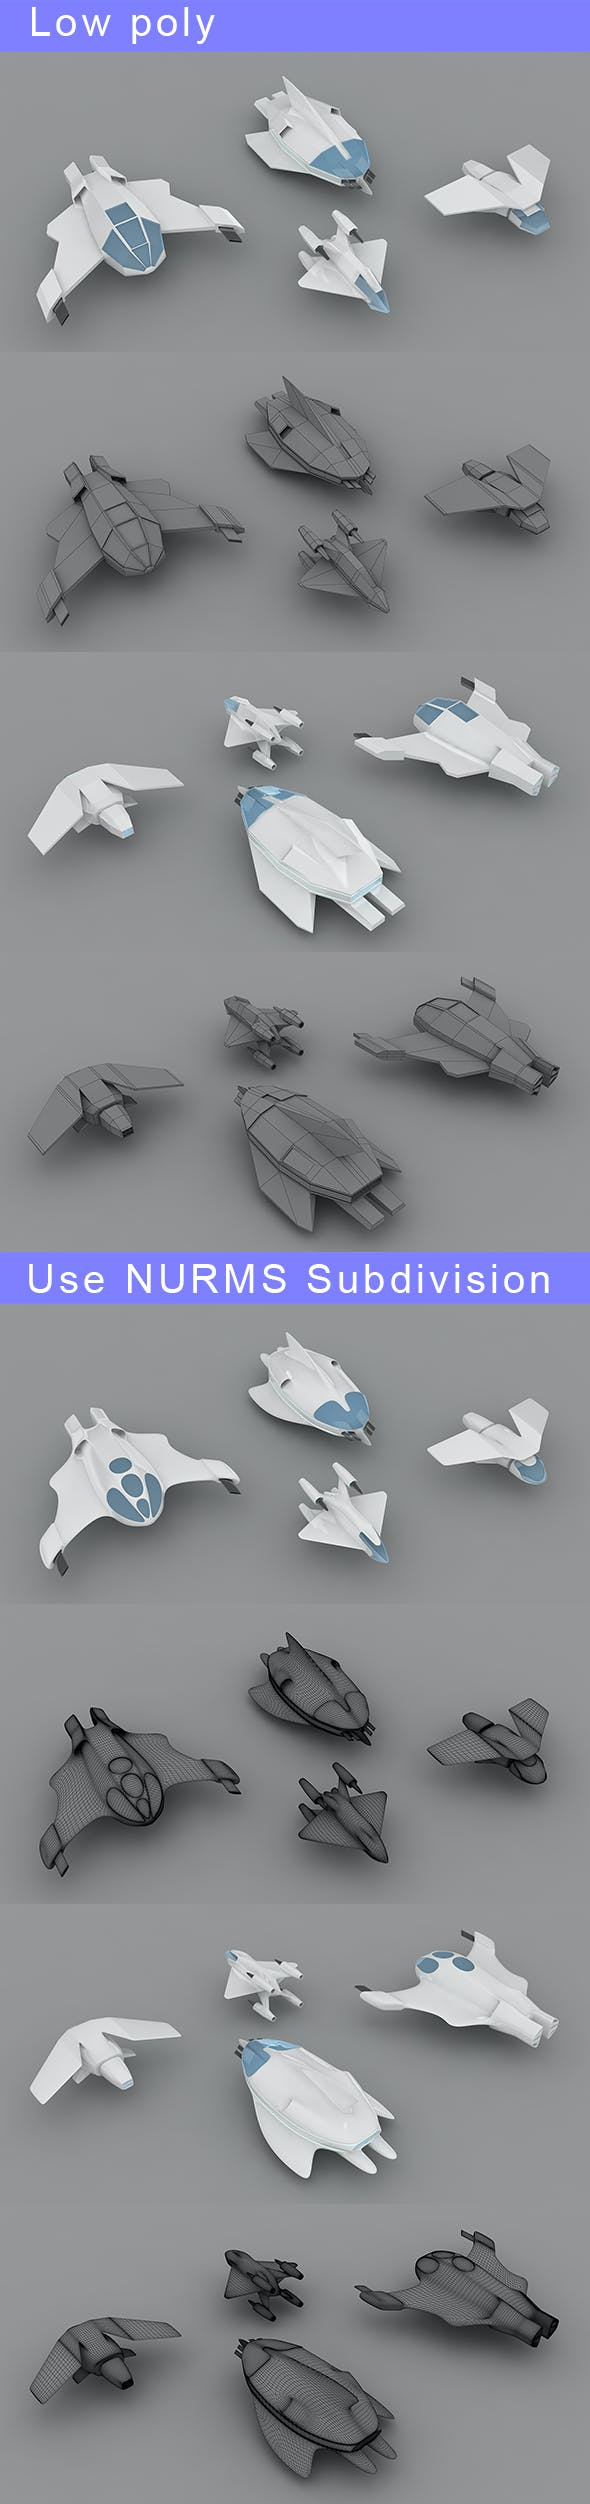 Low-poly Space ships (set 2) - 3DOcean Item for Sale